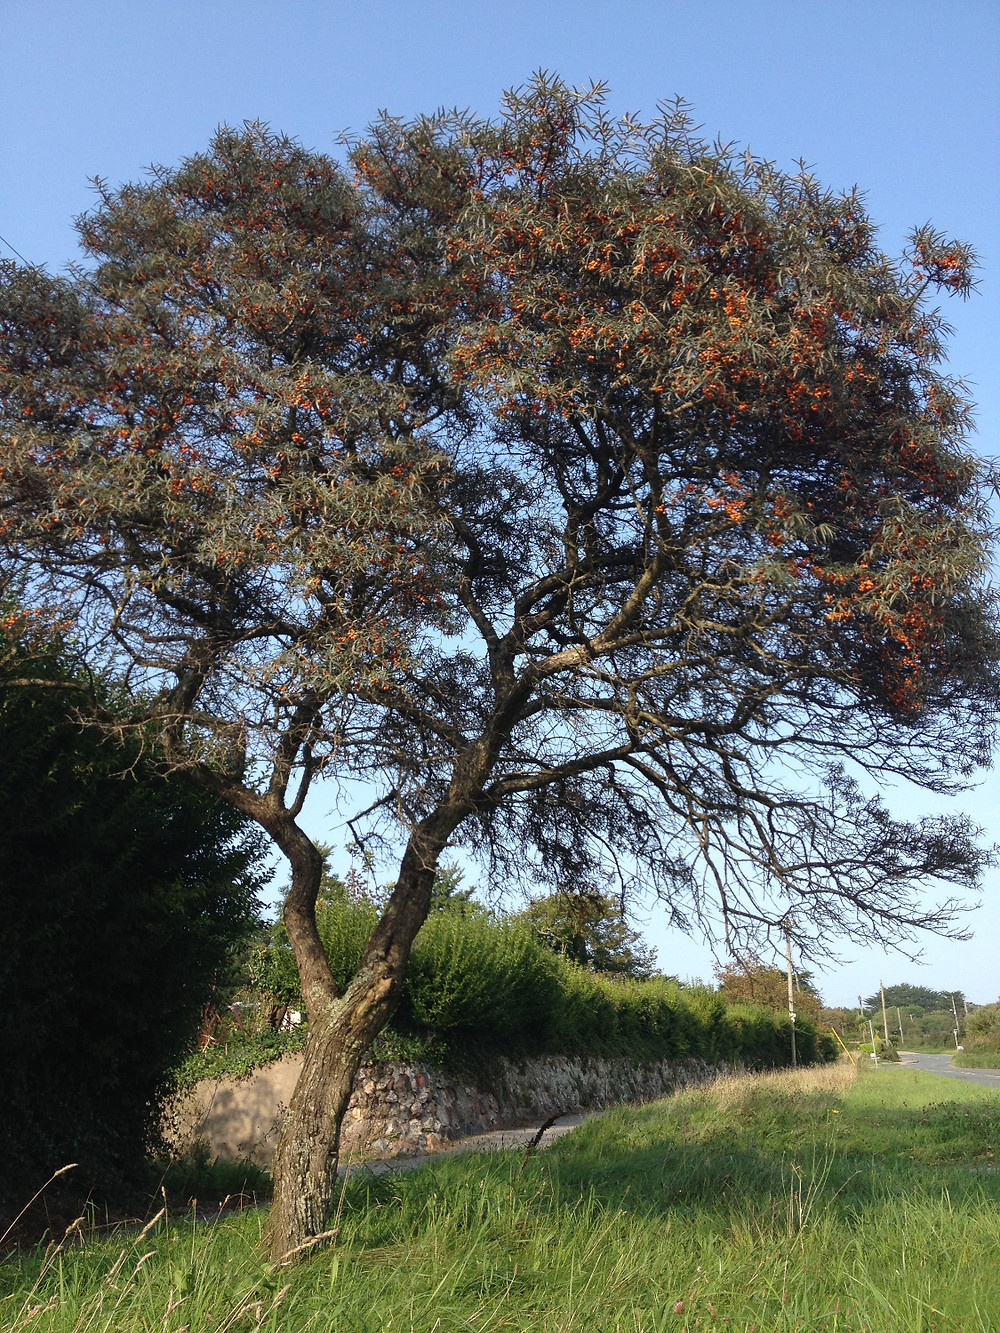 Sea buckthorn in its rarer tree form